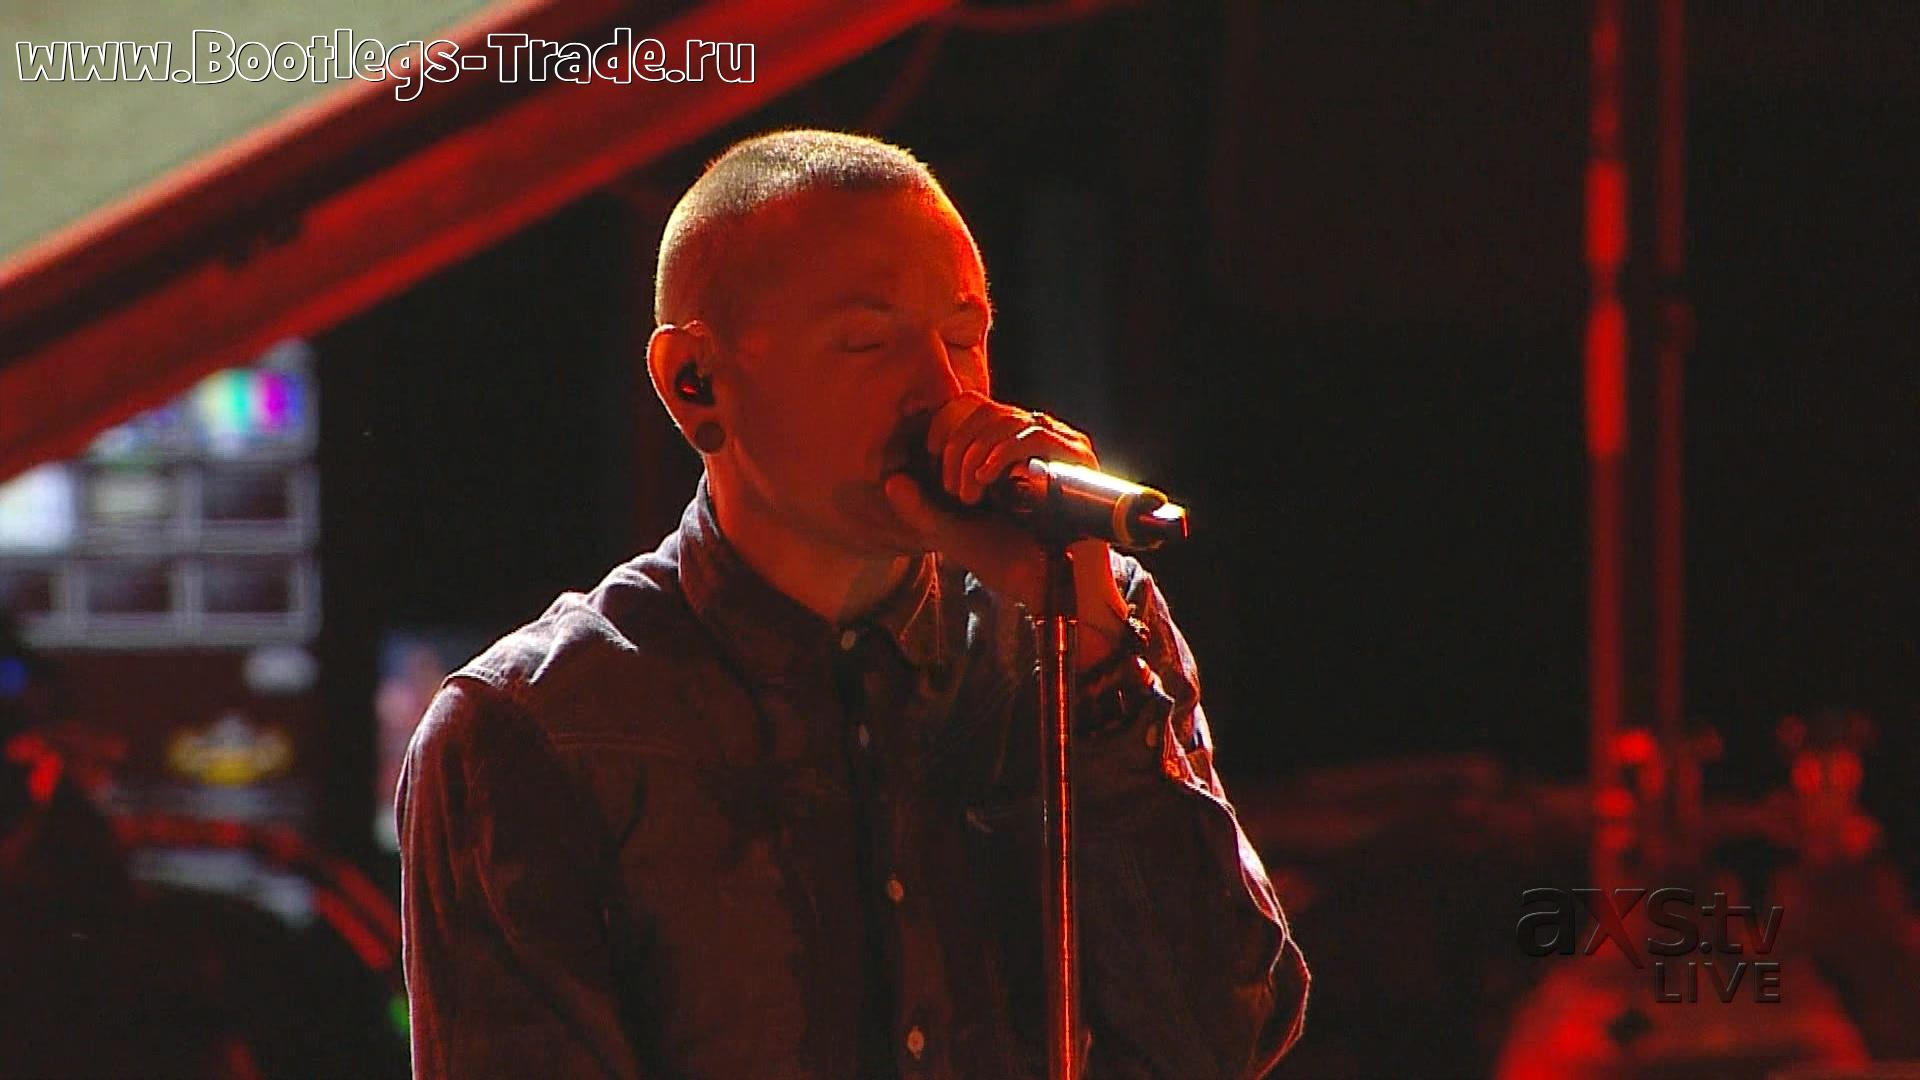 Linkin Park 2012-09-08 The Home Depot Center, Carson, CA (HD 1080)